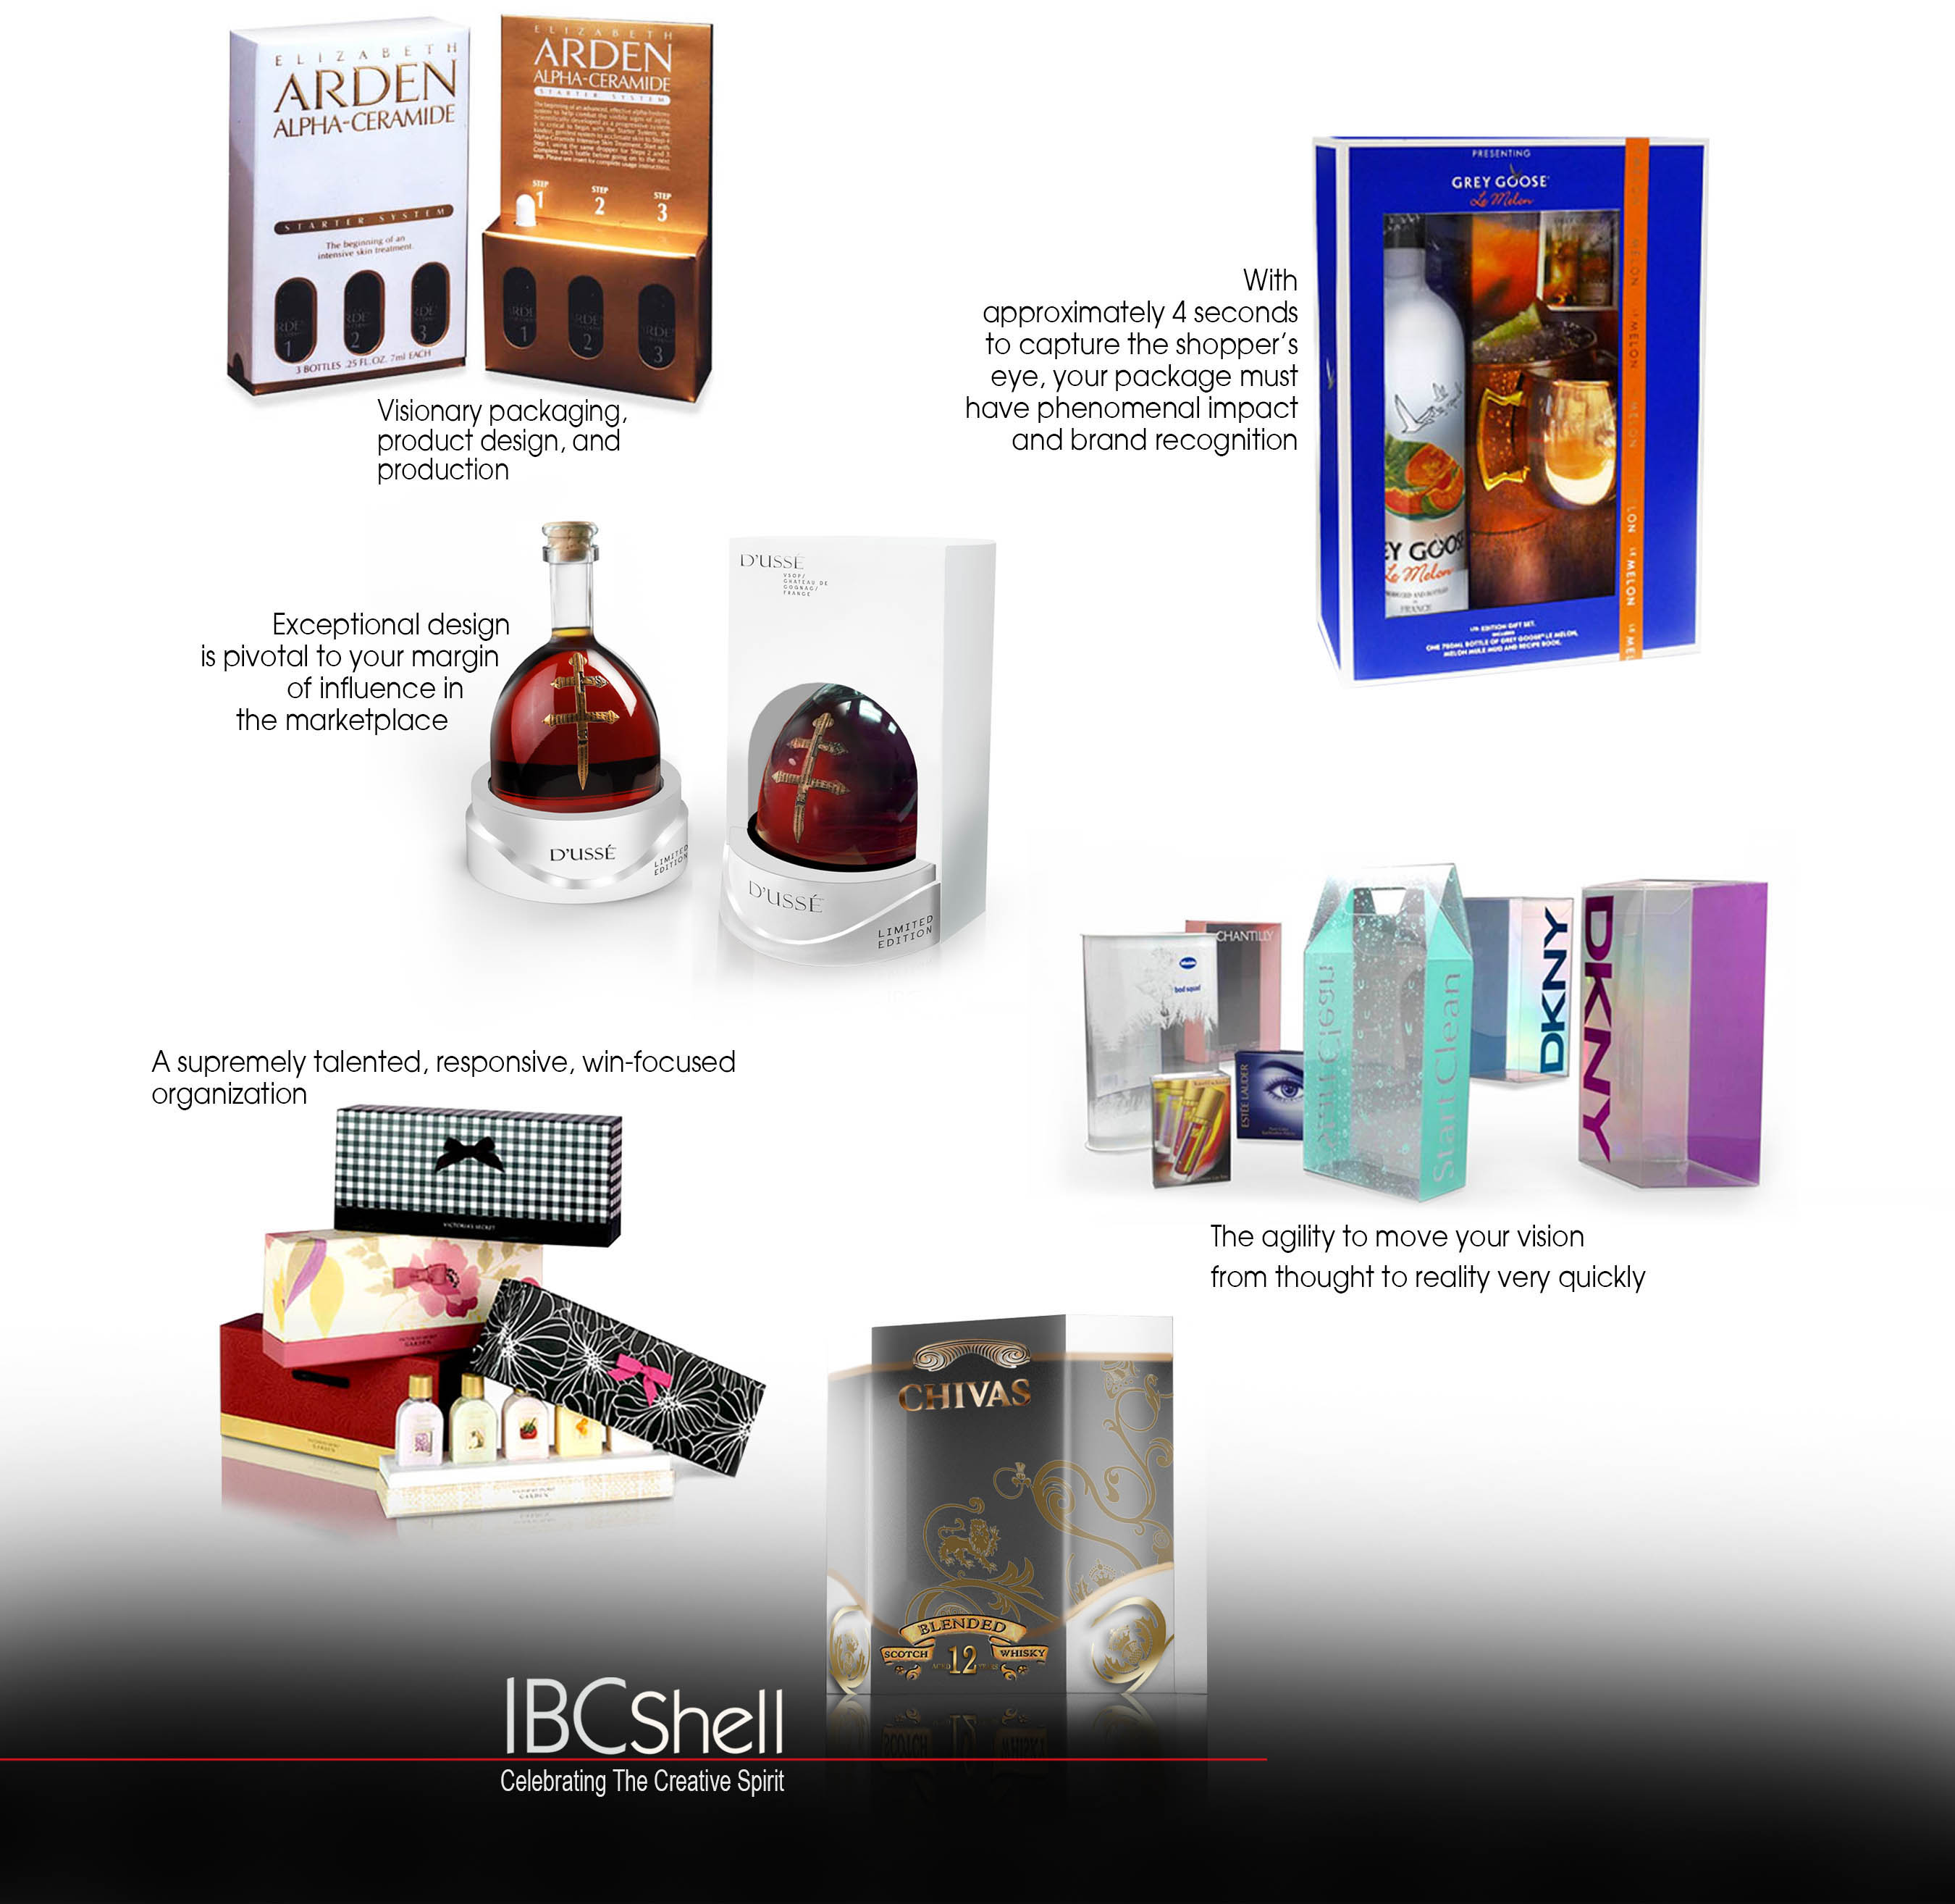 Incredible packaging, Elizabeth Arden Package, D'USSE package, Chivas Regal package, cosmetic packaging, fragrance packaging, Grey Goose Vodka package, bath n body package, IBC Shell Packaging, package design